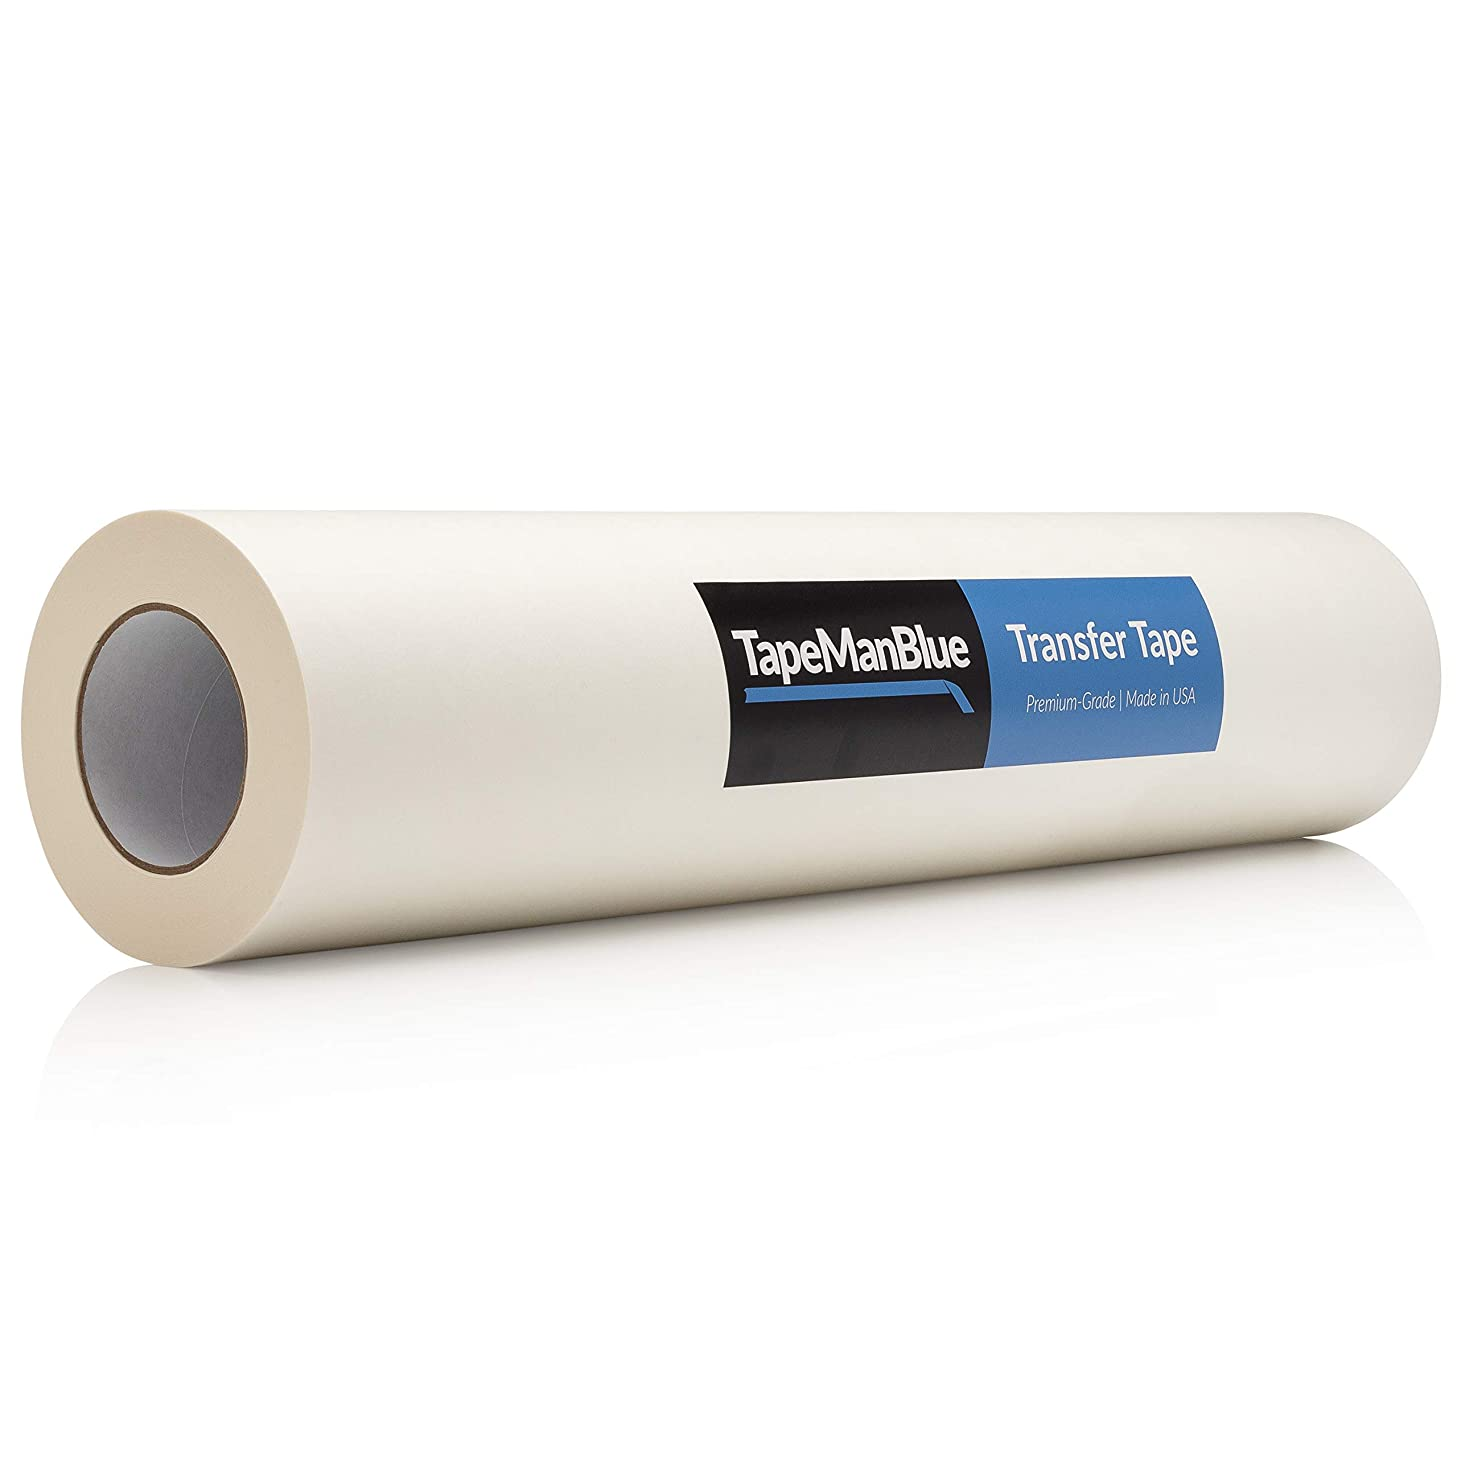 24 inch x 100 Yard Roll of Vinyl Transfer Tape Paper with Layflat Adhesive. Premium-Grade Application Tape for Vinyl Graphics and Sign Making. Made in The USA